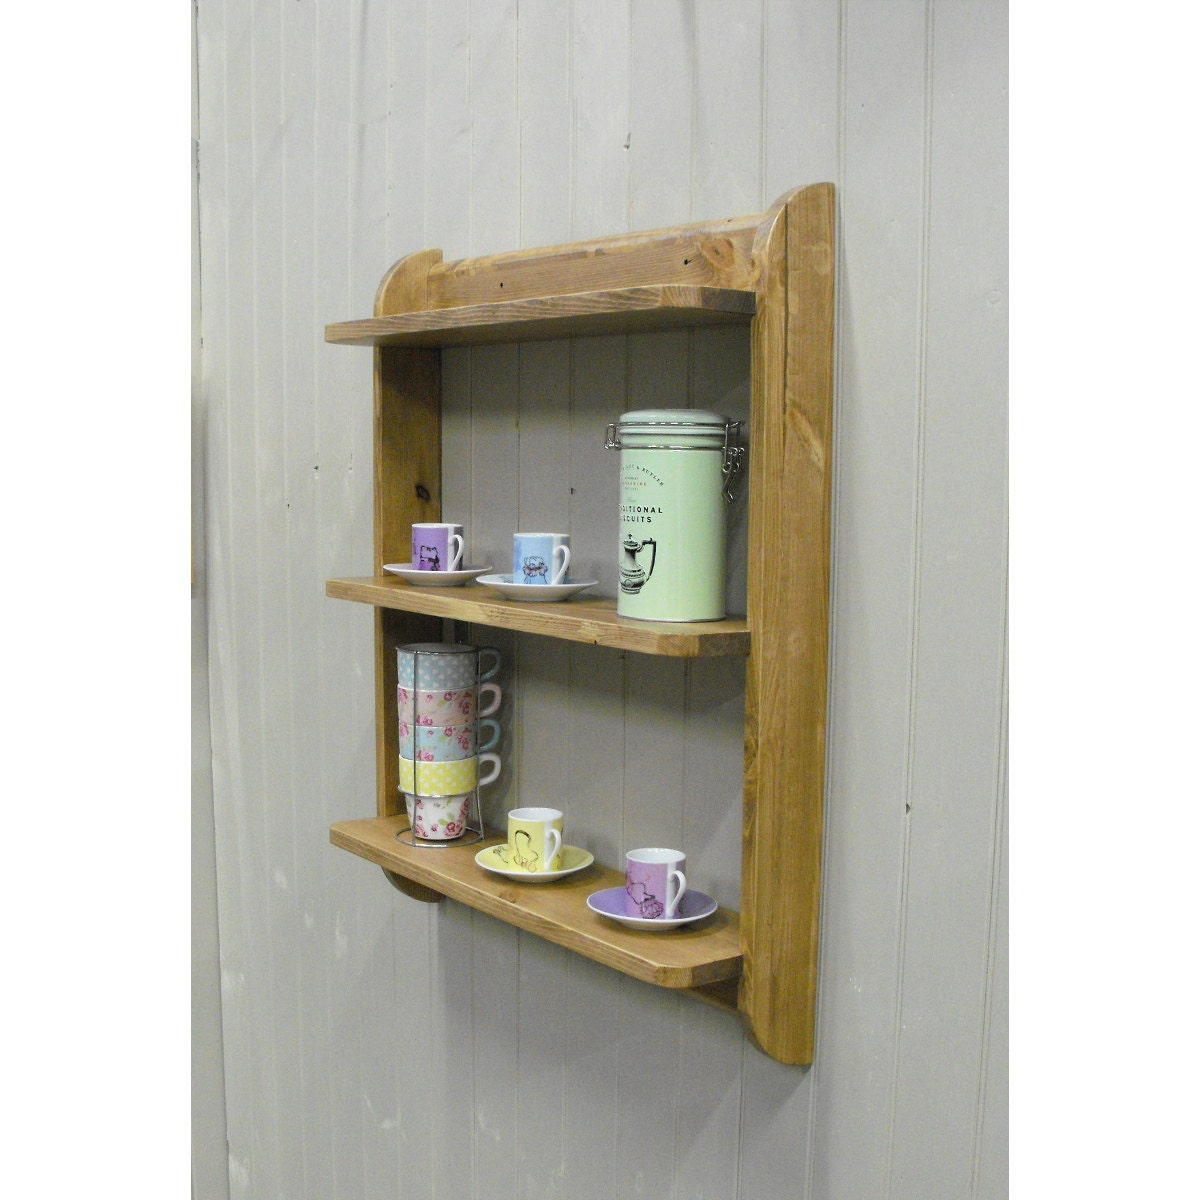 Kitchen Shelves Wall Mounted: Wall Mounted Shelf Unit. Kitchen Shelves Or Cd Dvd And